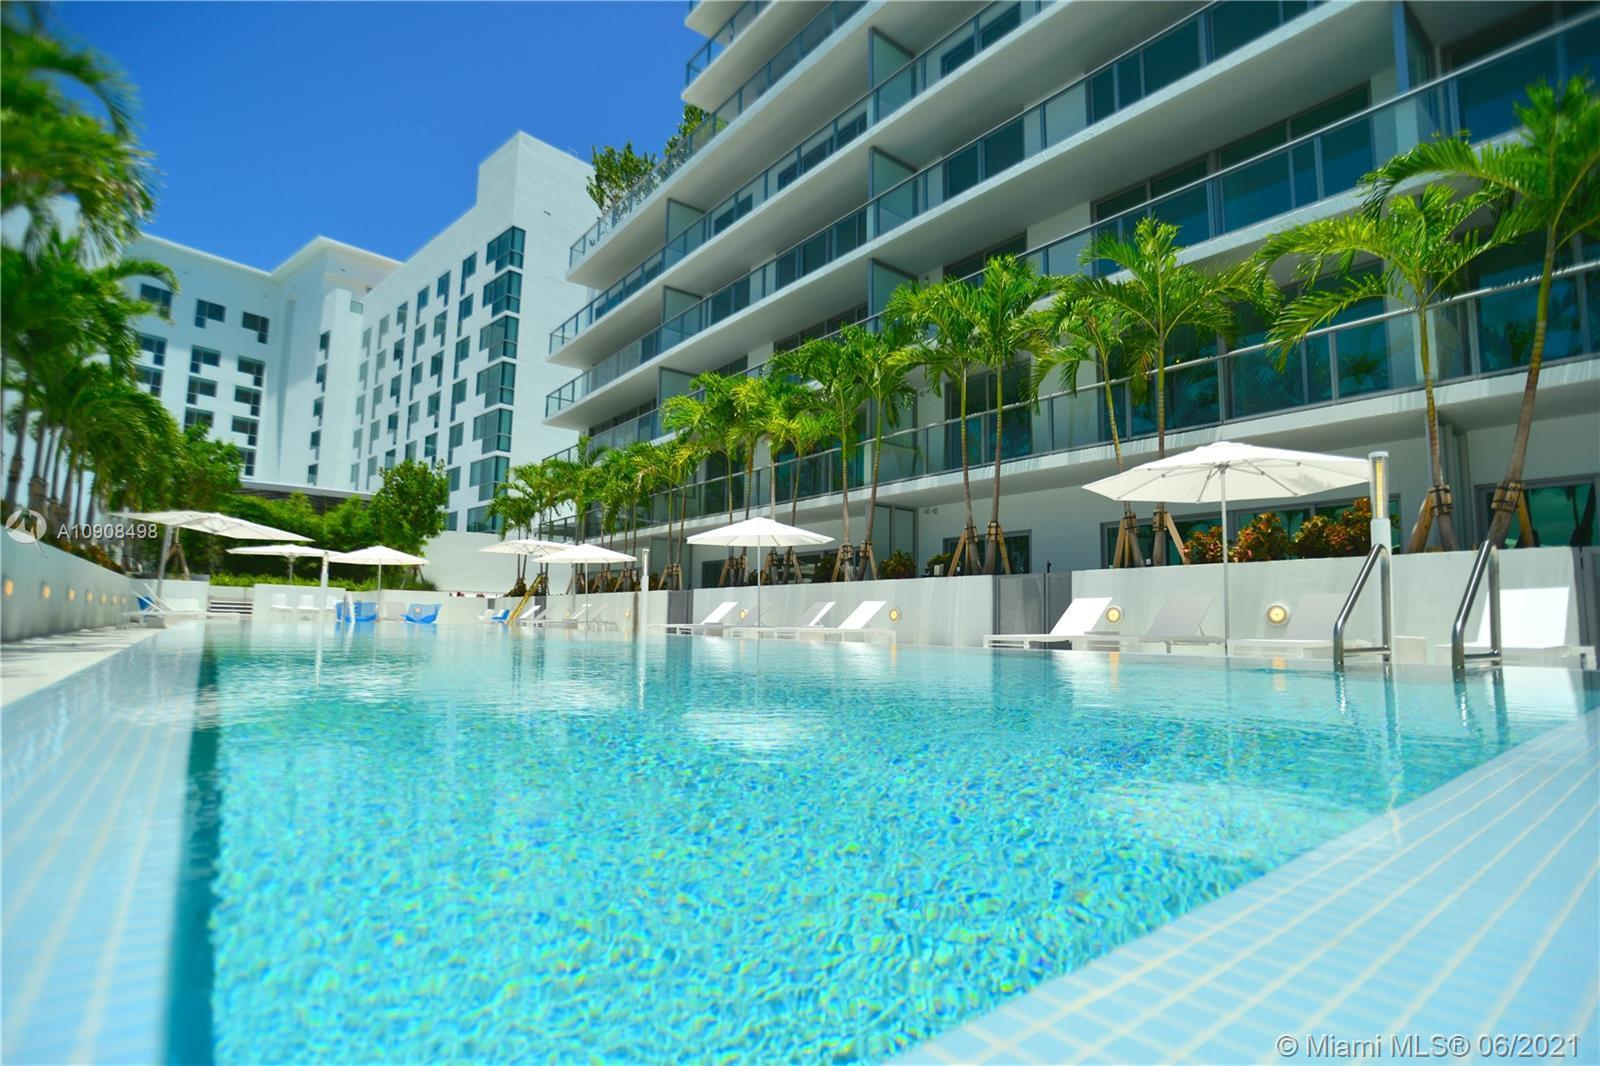 LARGE 1/1 at LE PARC BRICKELL. BAY VIEWS, AND GREEN OPEN PARK VIEWS. TOP OF THE LINE DECORATION AND FINISHES. LOCATED ON A QUIET AREA OF BRICKELL, AWAY FROM NOISE AND HEAVY TRAFFIC. FULLY FURNISHED TURNKEY. Amenities include two parking spaces, Two pools: one rooftop pool one on the 4th FL. Fitness center, secure access to the building. 24 HR Front desk attendant, Walking distance to Supermarkets, stores restaurants and much more. Great condo for pet lovers. Close to the public free transportation, metro mover, Trolley. Definitely a